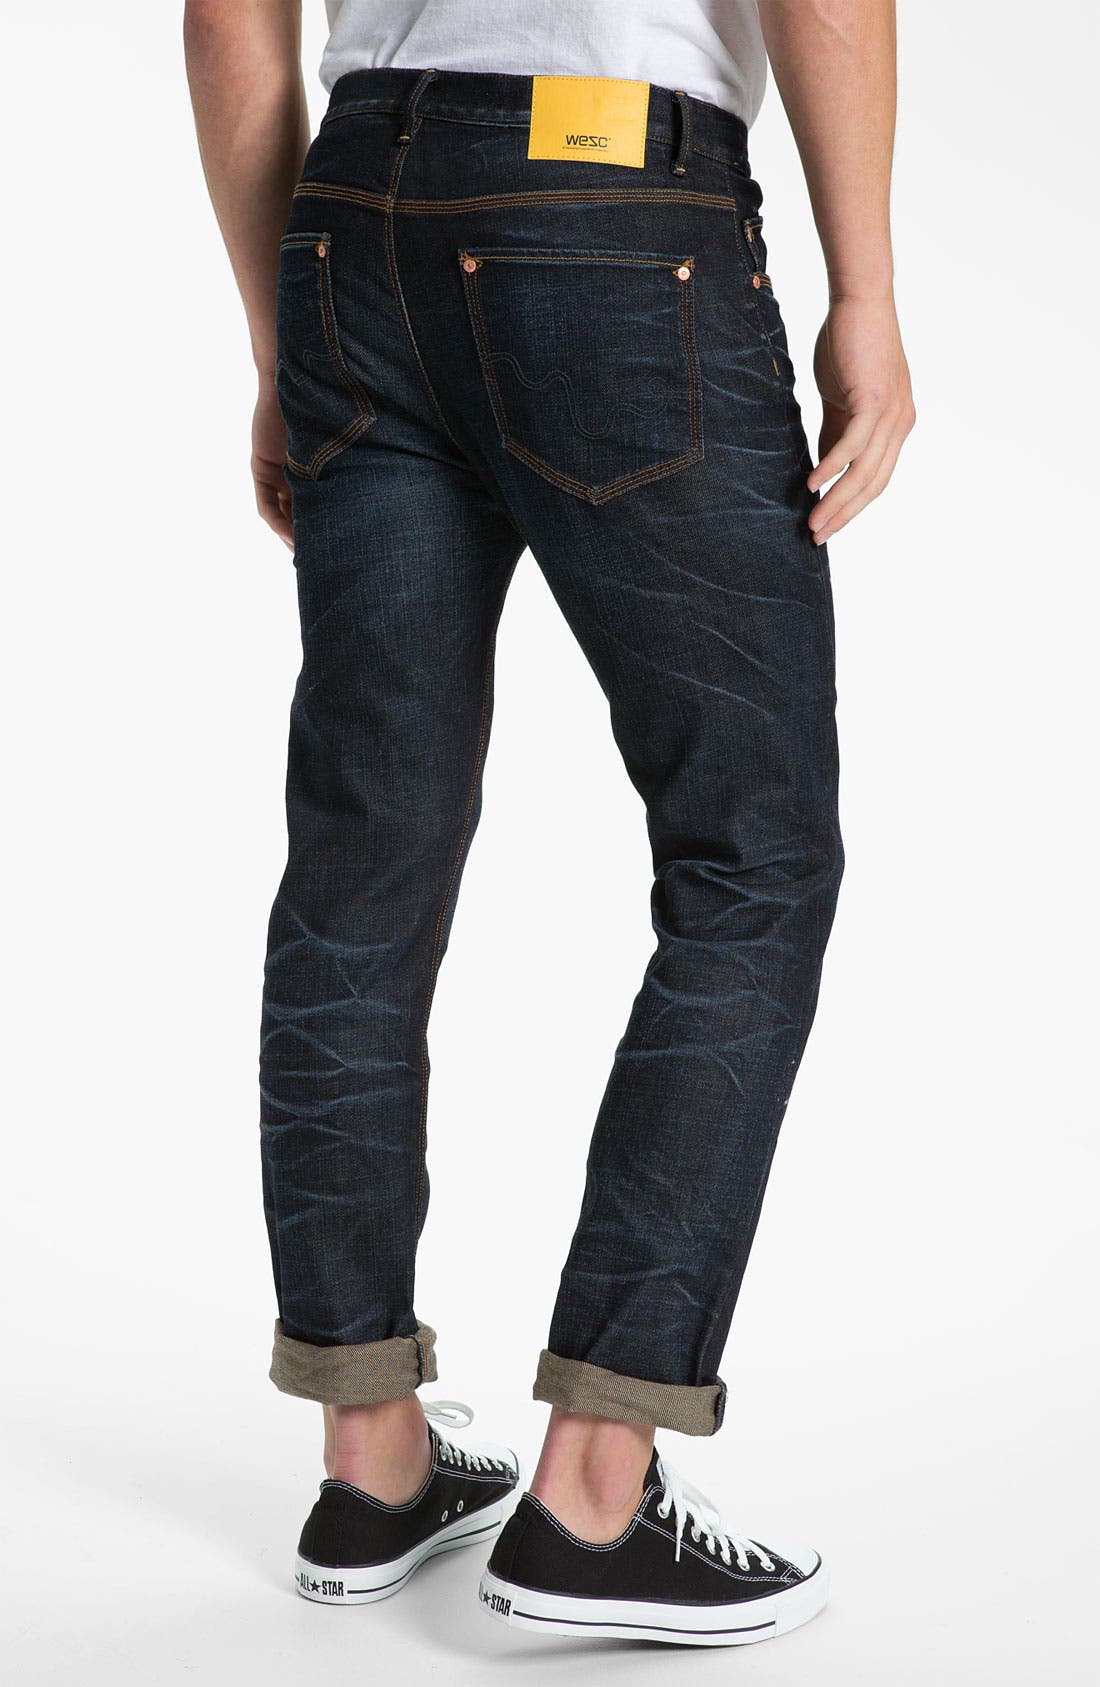 Alternate Image 1 Selected - WeSC 'Eddy' Slim Fit Jeans (Three Months)